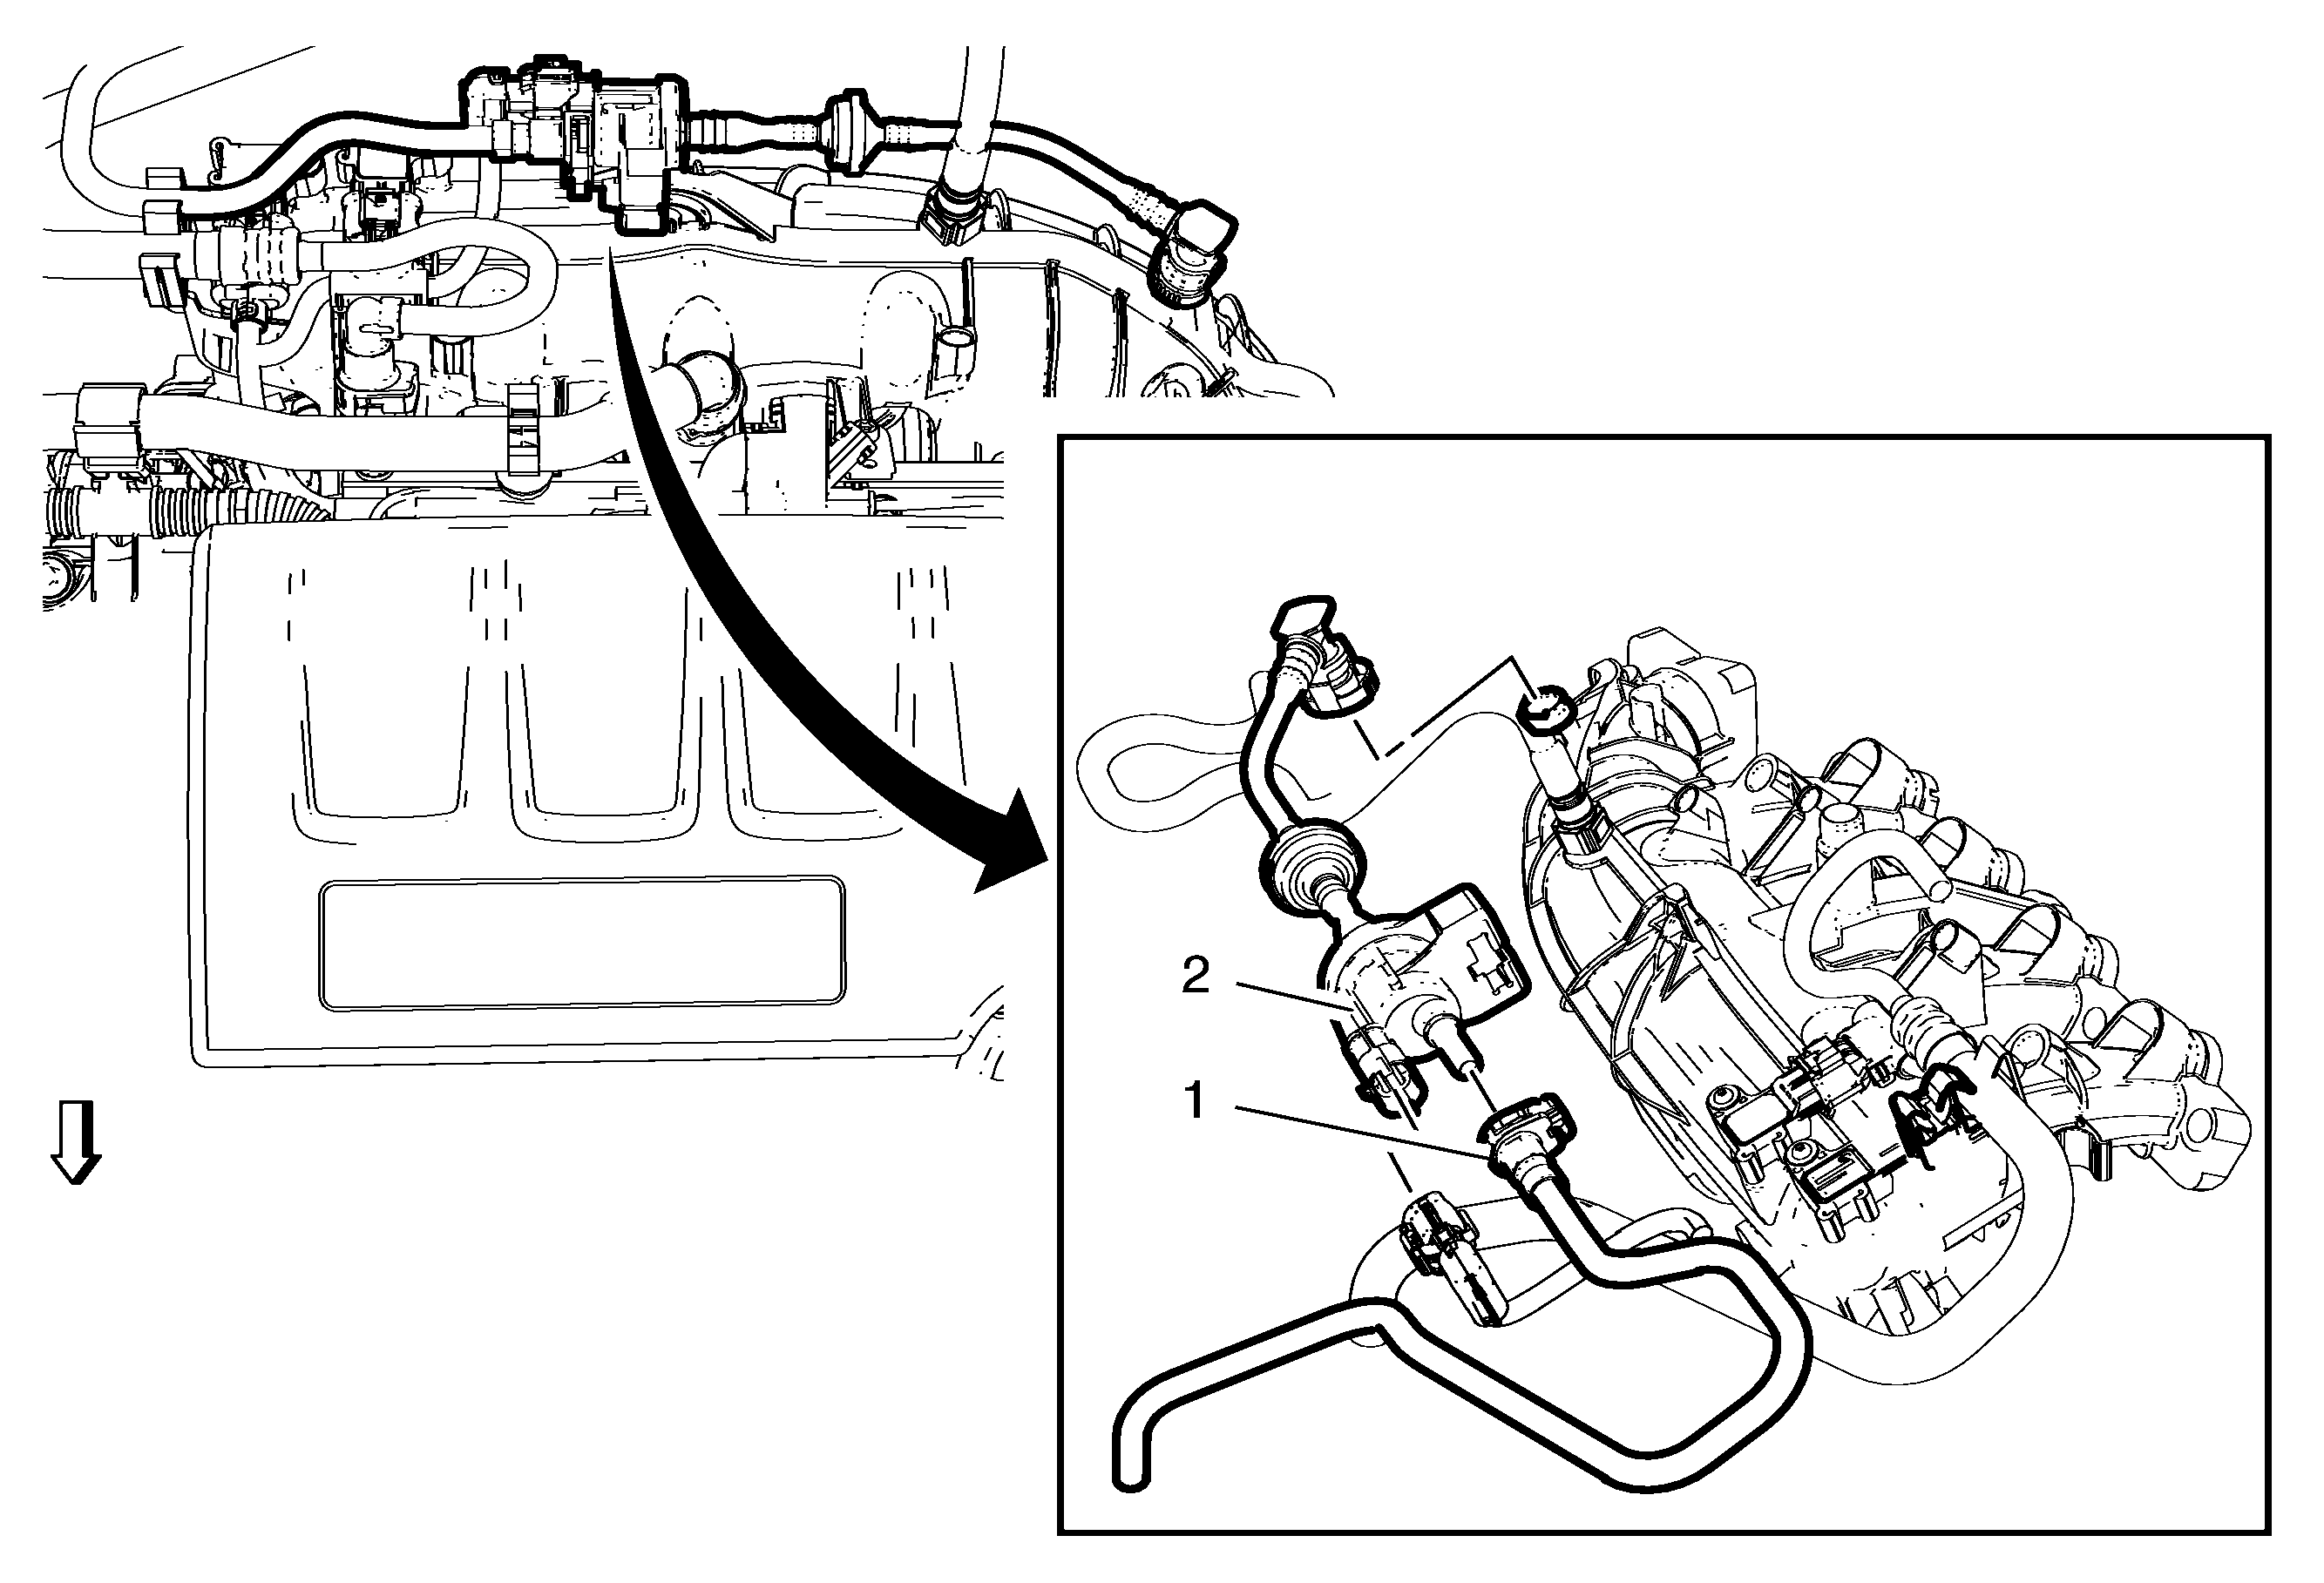 [RH_0832] 2016 Chevrolet Cruze Engine Diagram Free Diagram